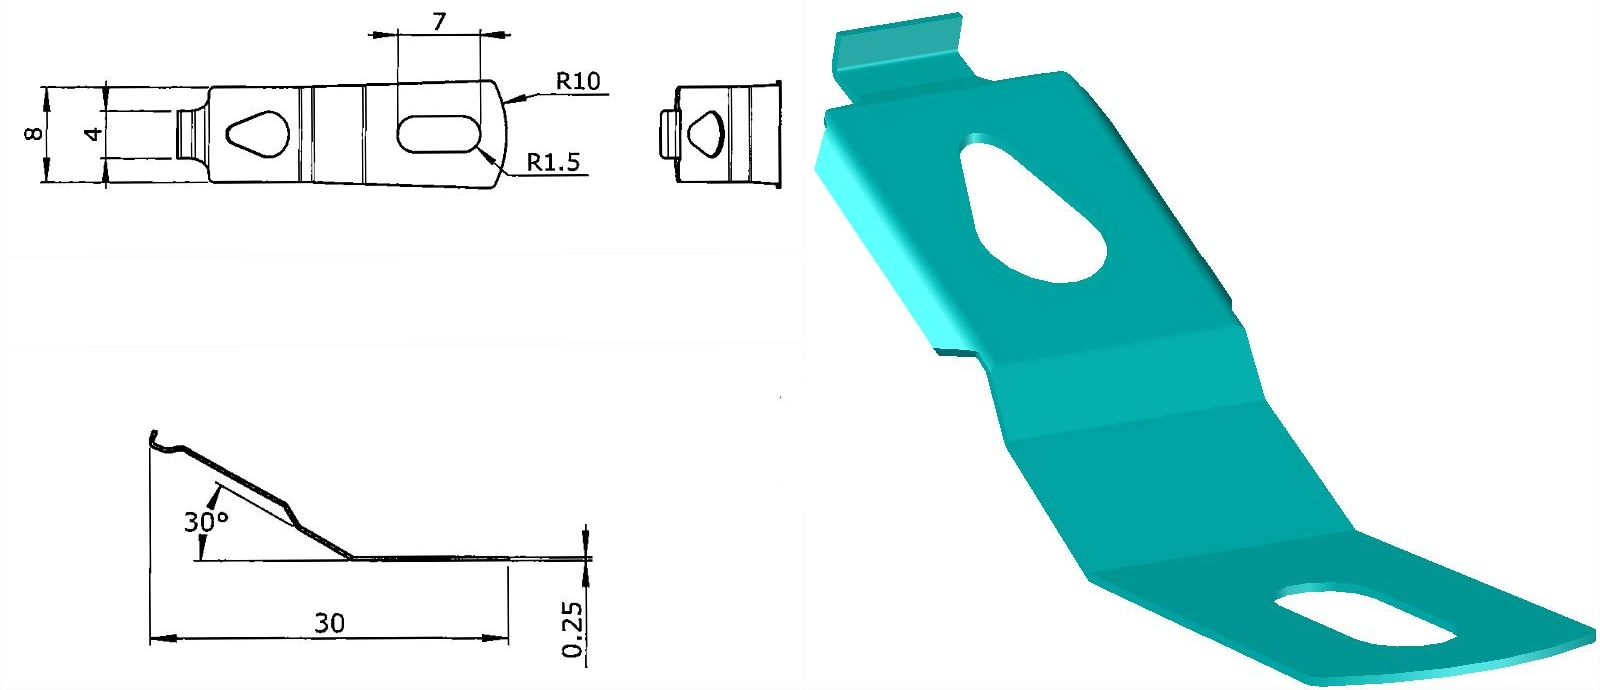 Locking mechanism, 3D modelling